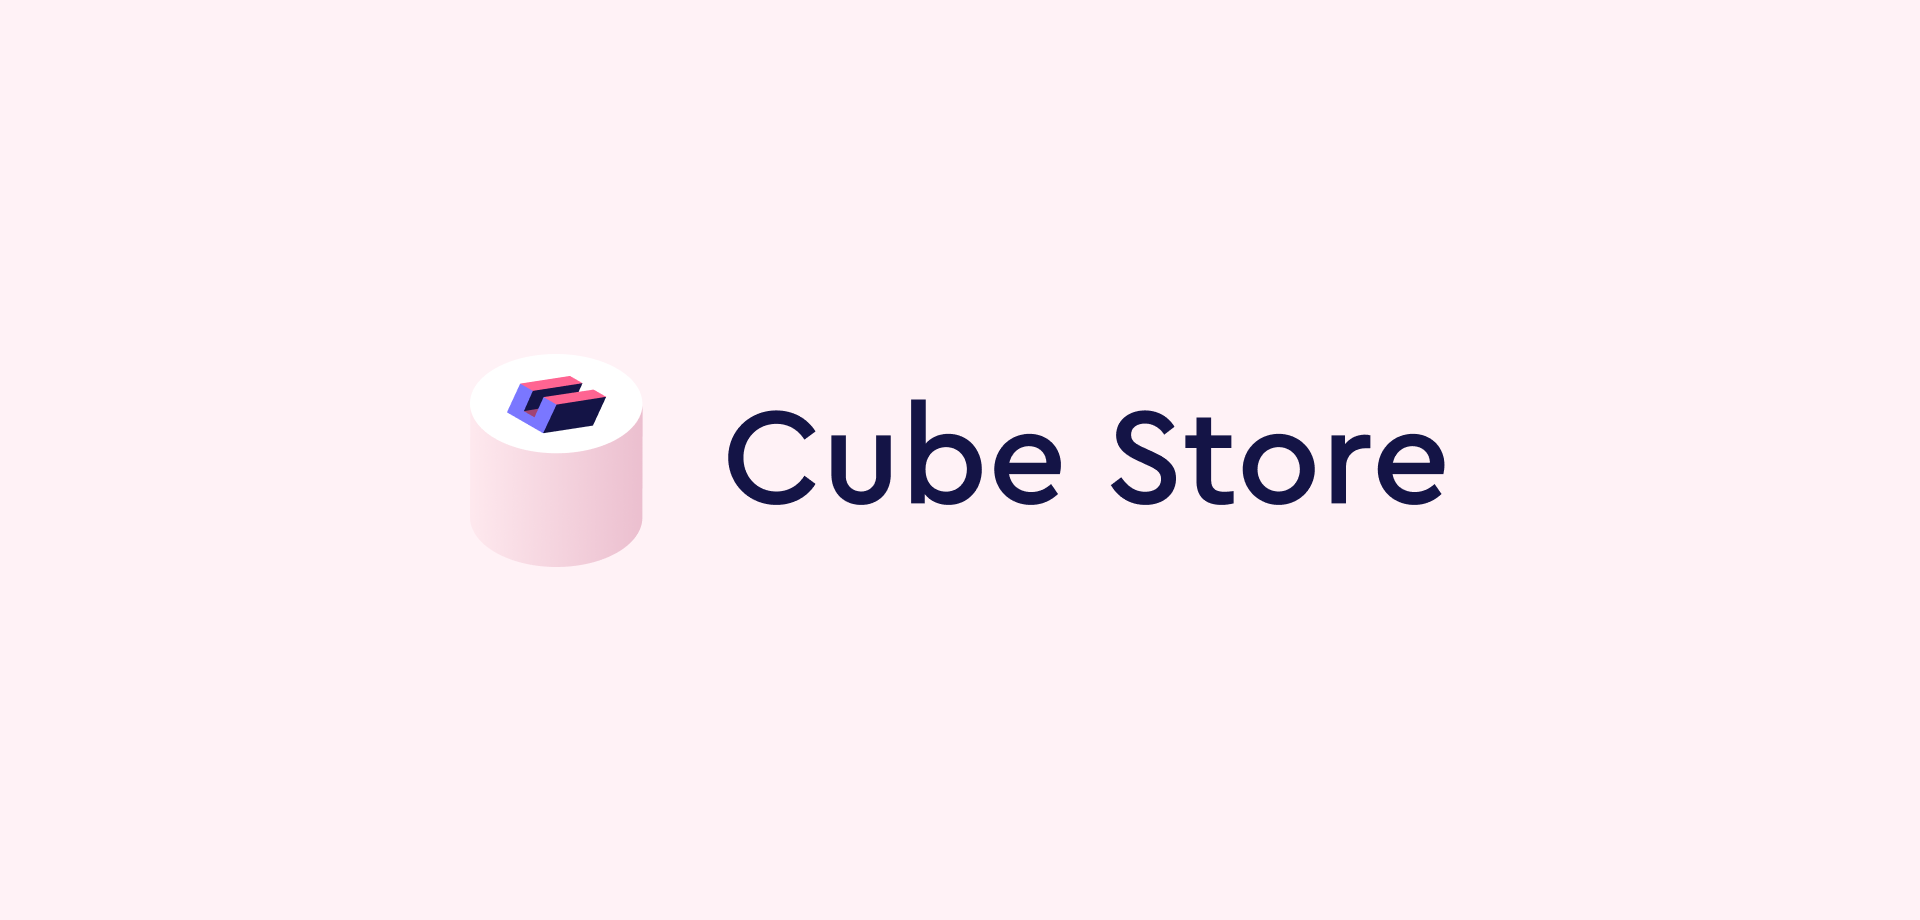 Introducing Cube Store: High concurrency and sub-second latency for any database